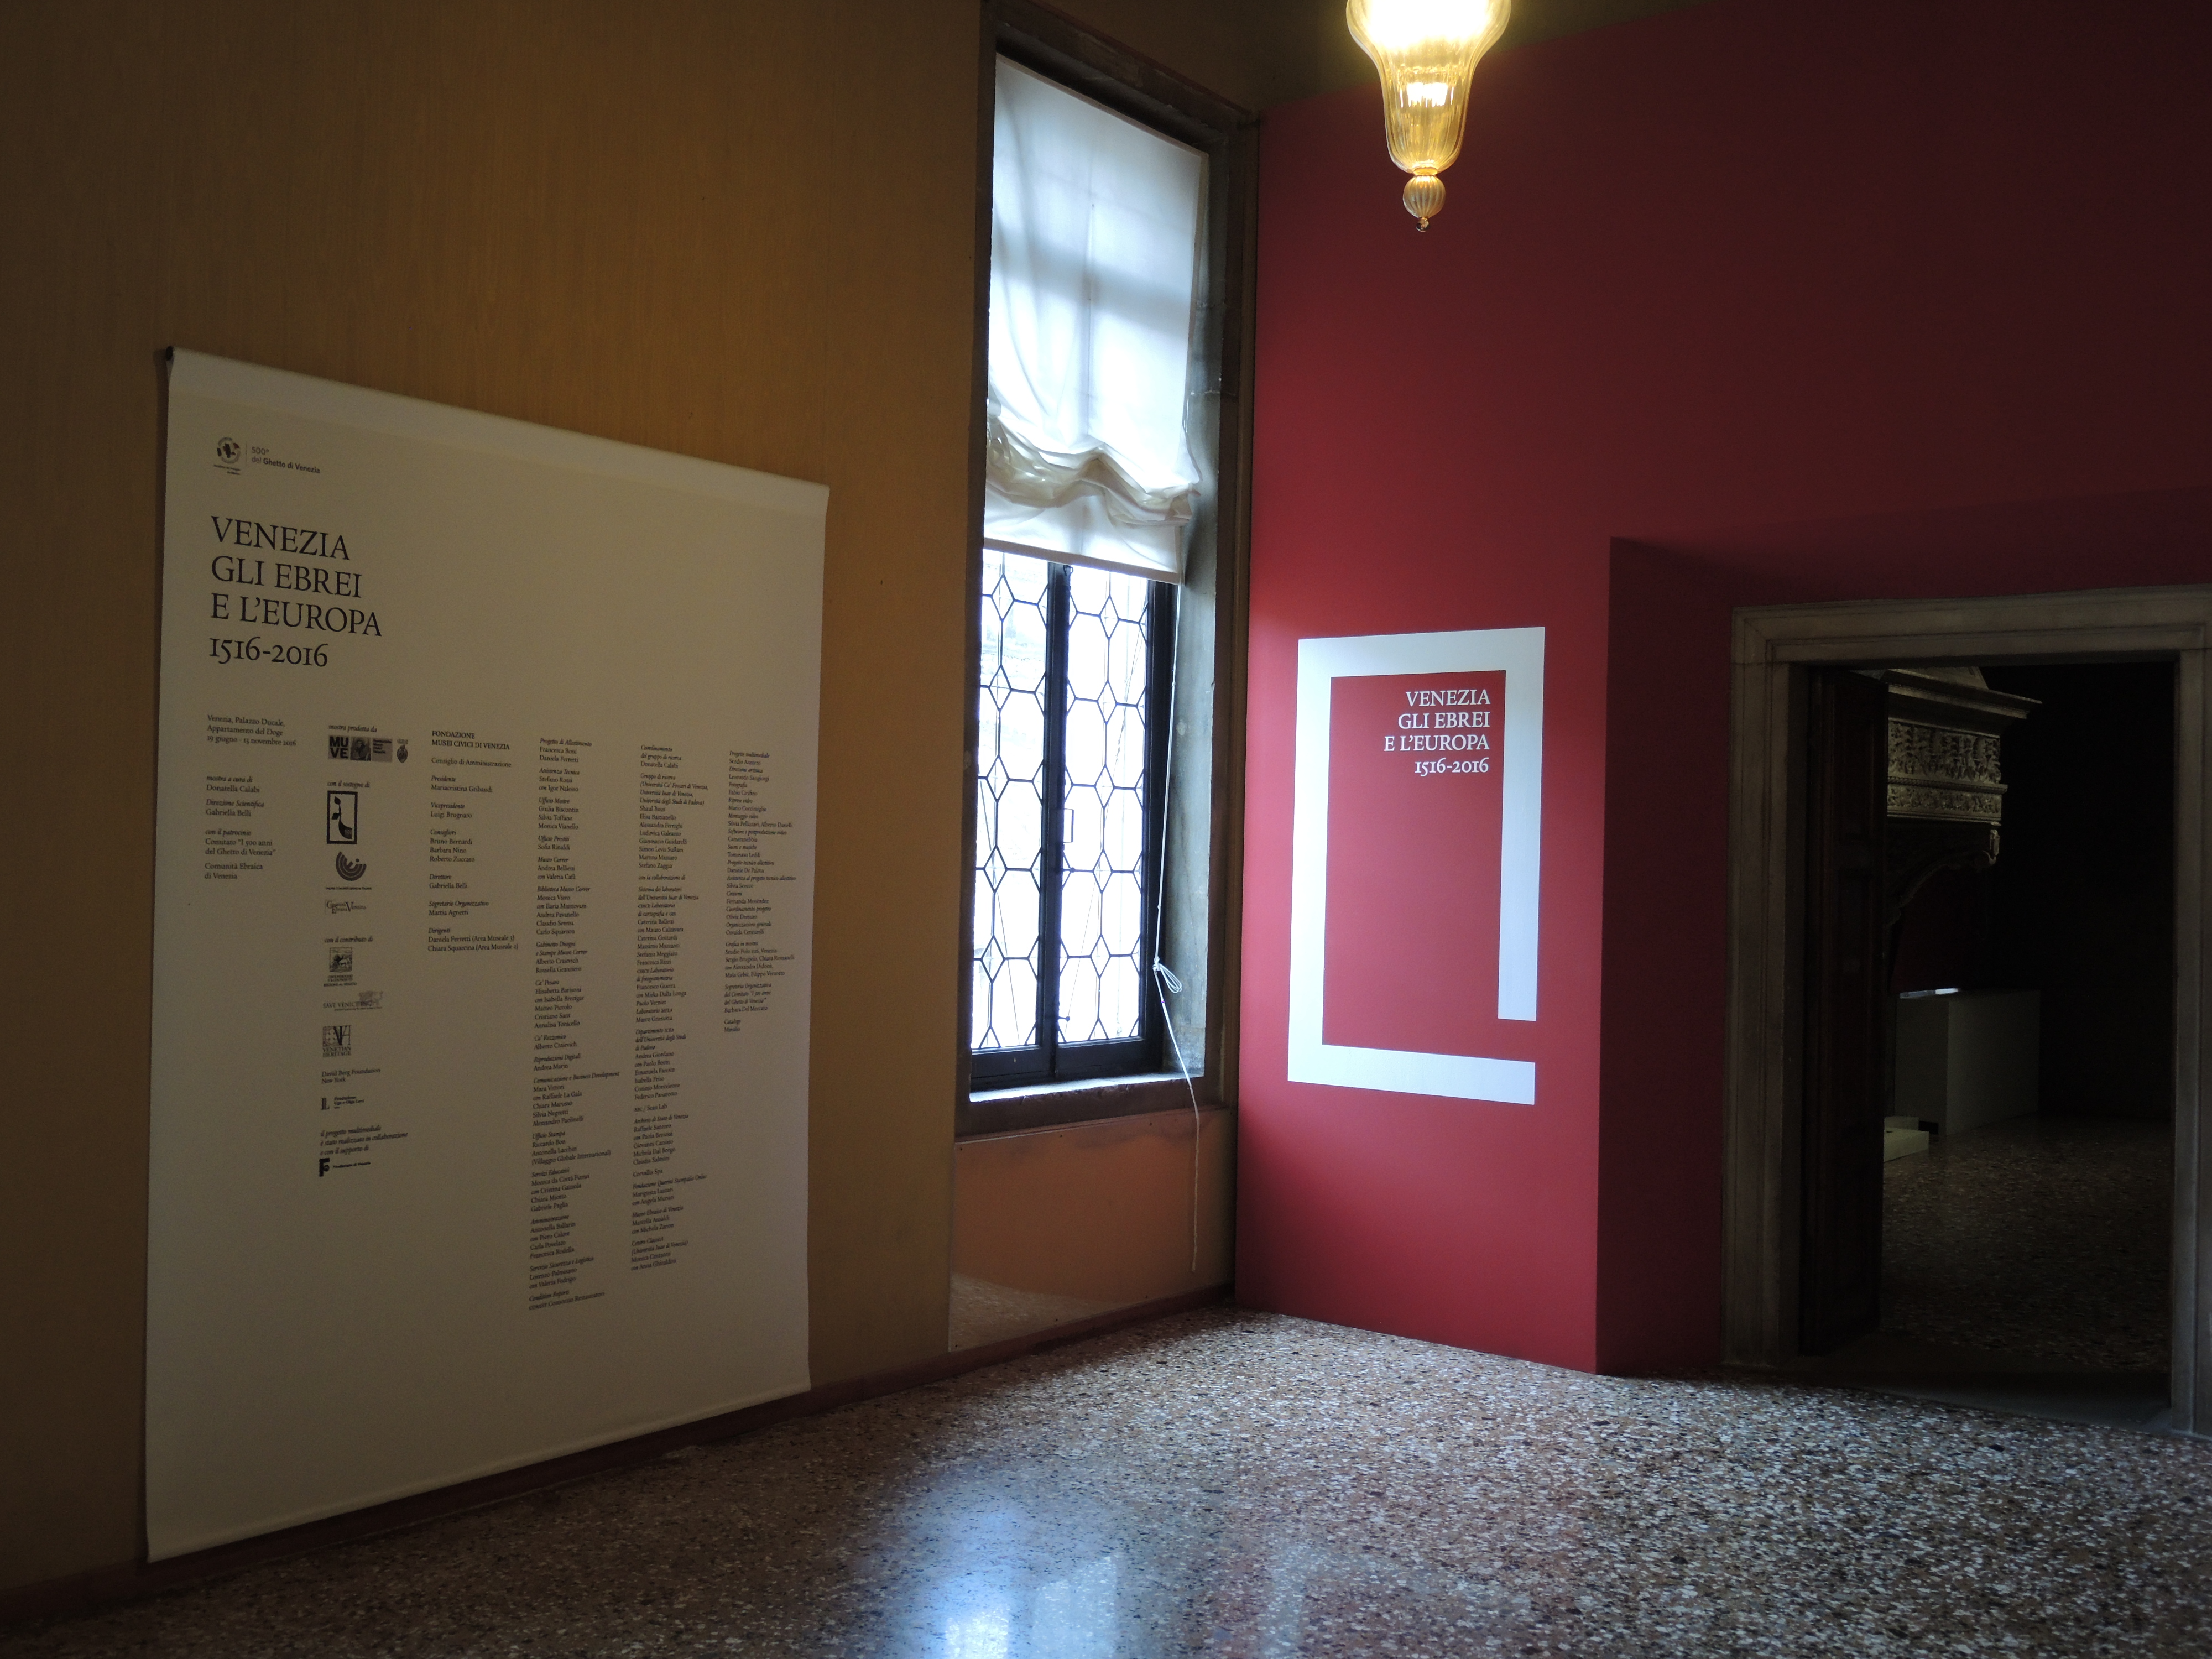 Entrance to the exhibit